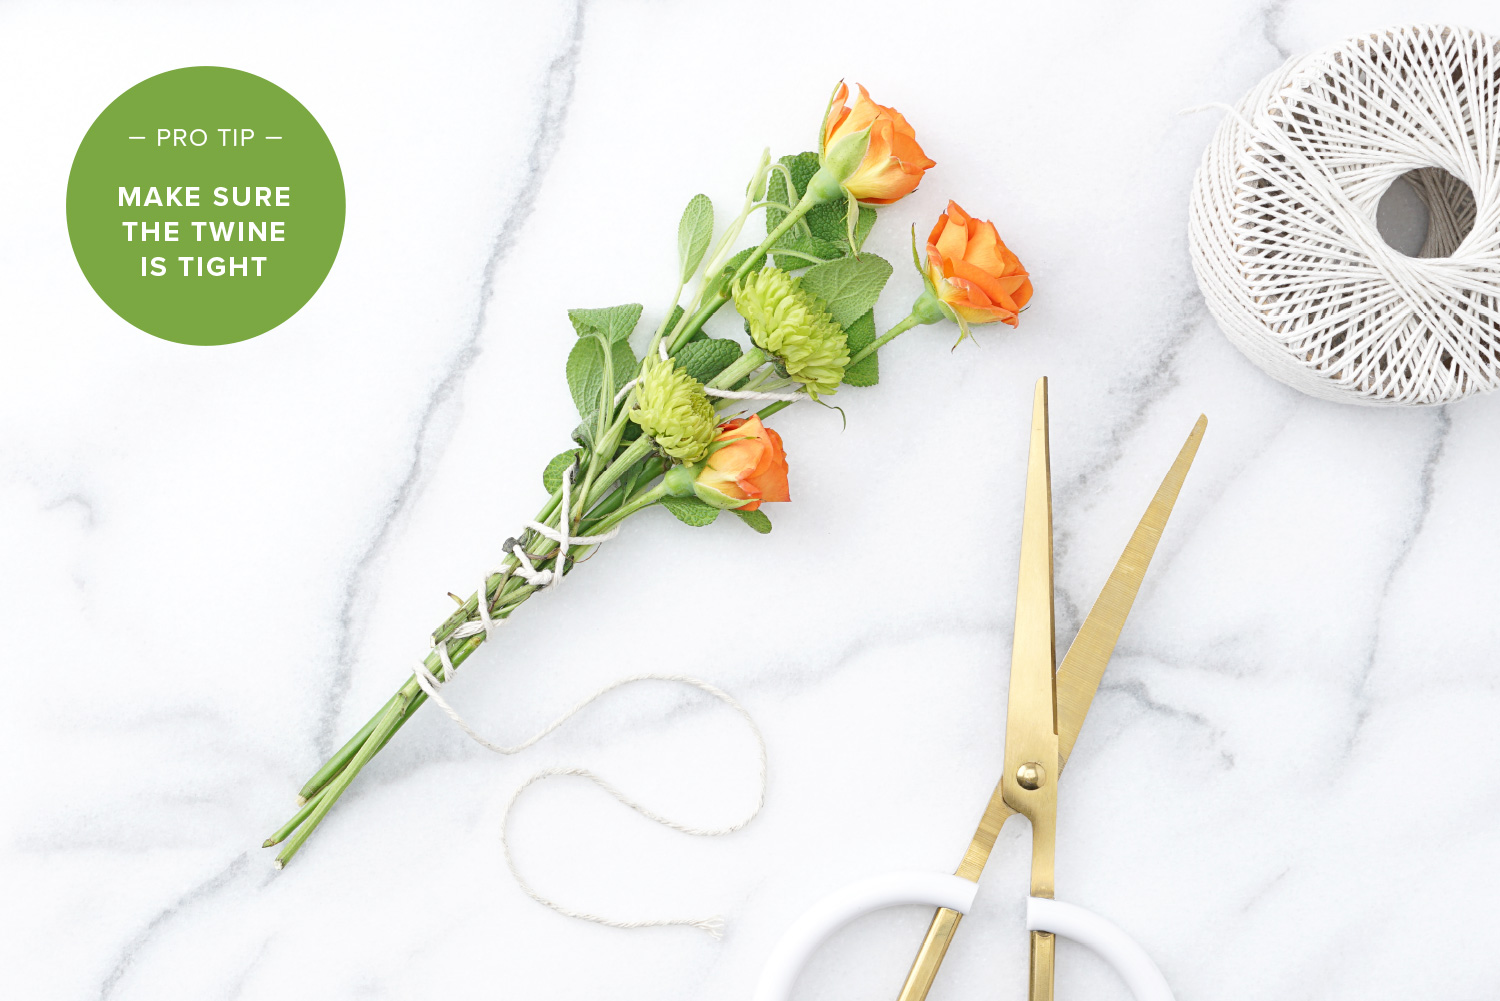 tie cotton twine tight around roses and poms how to make incense